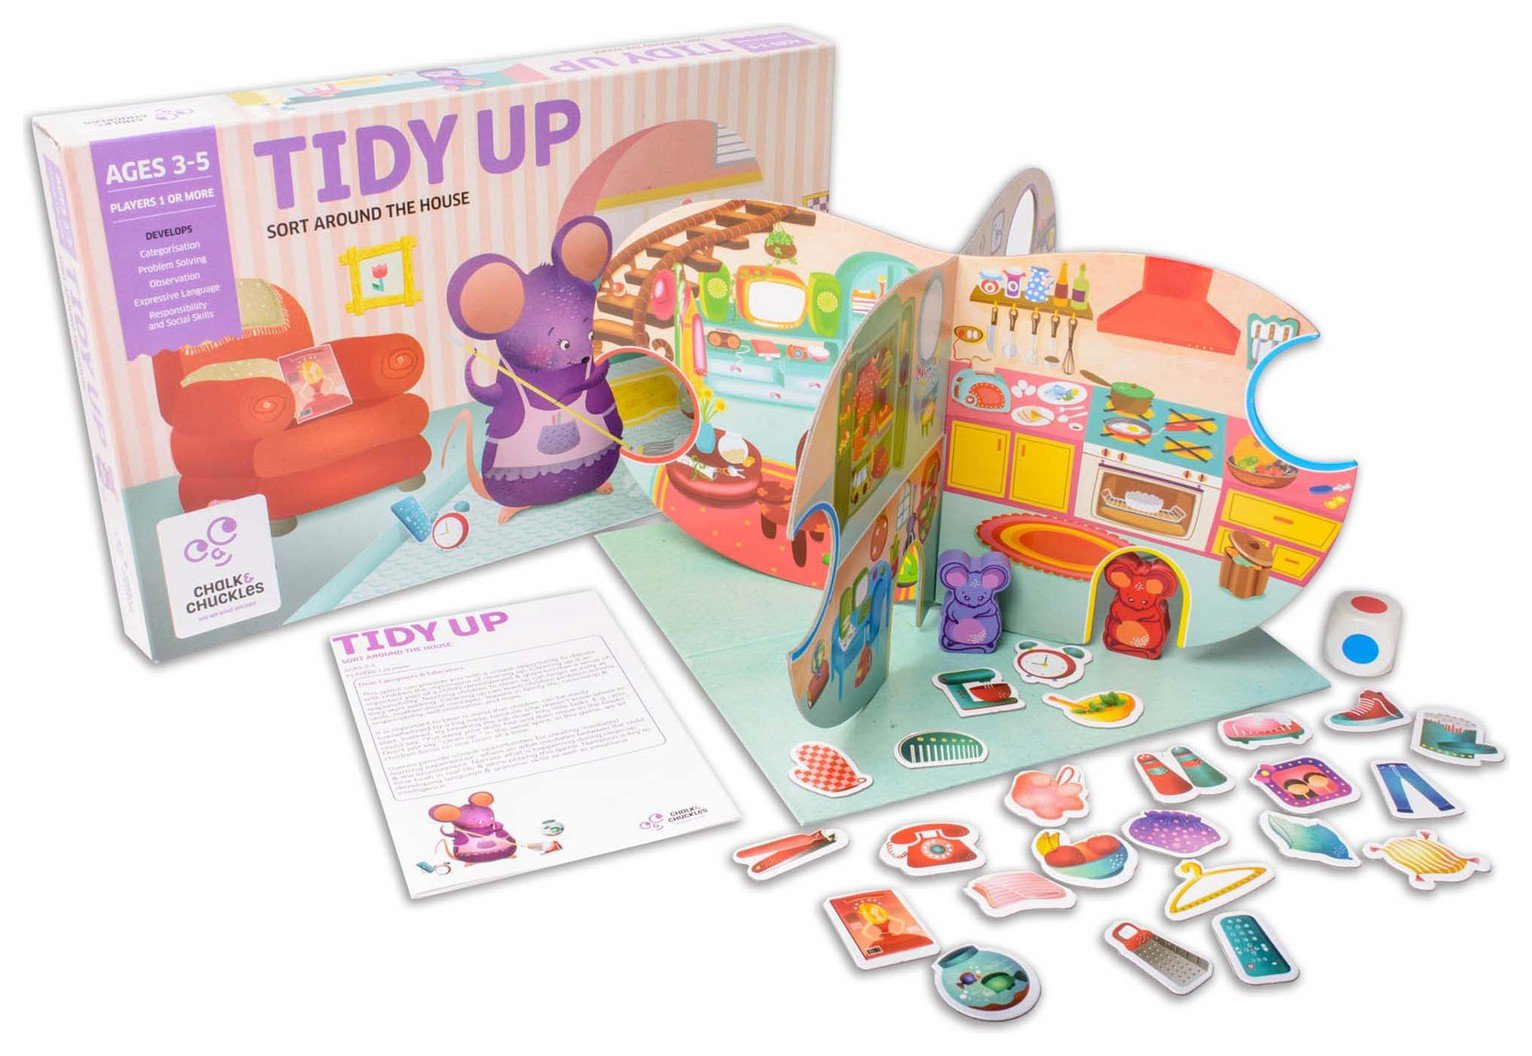 Image of EDUK8 Tidy Up Board Game